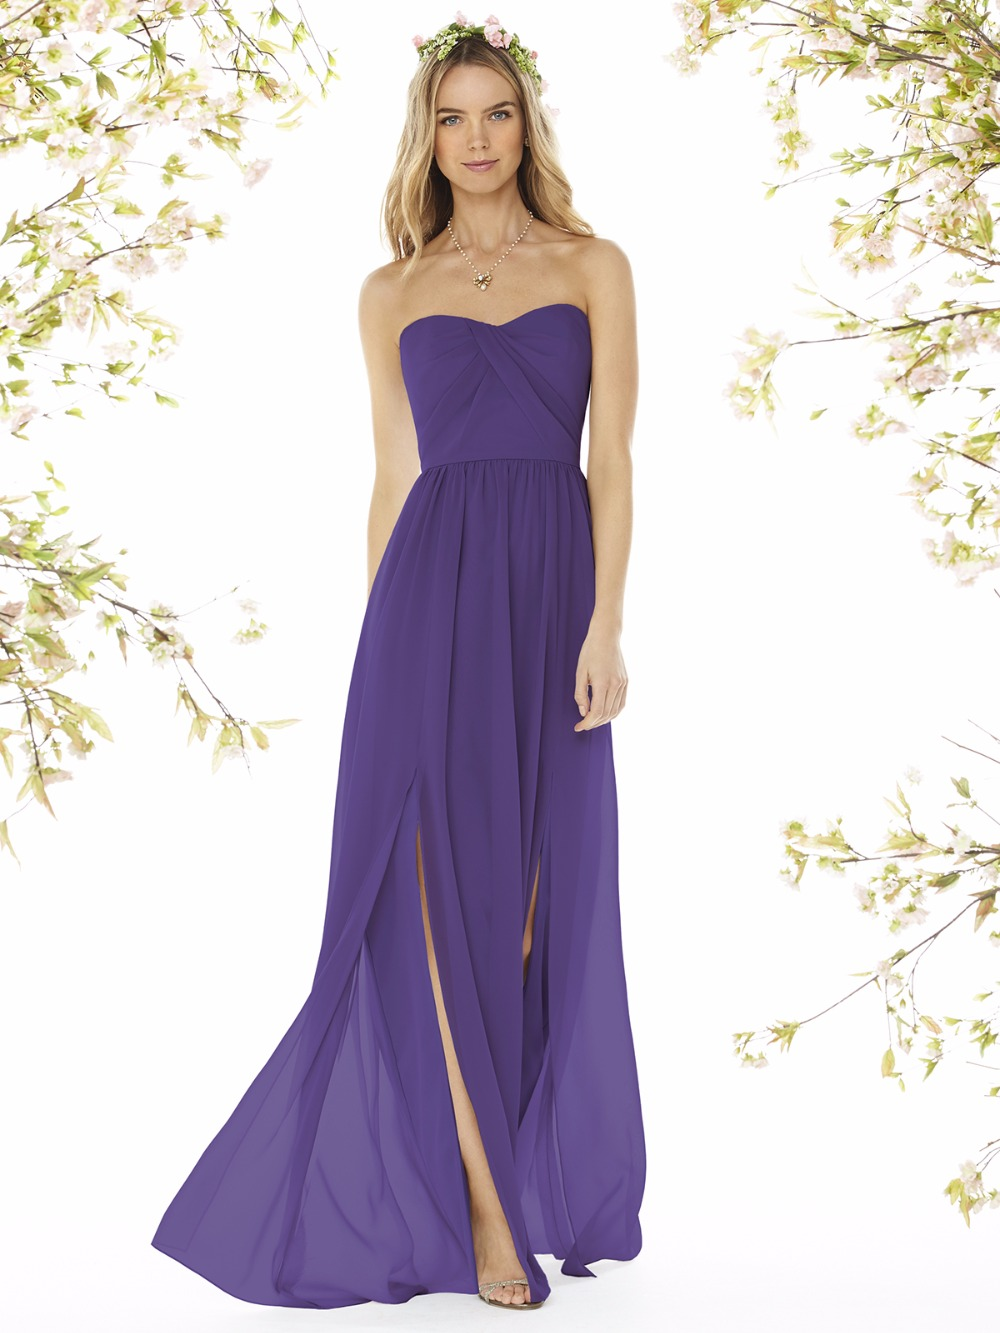 Ultra violet color dress